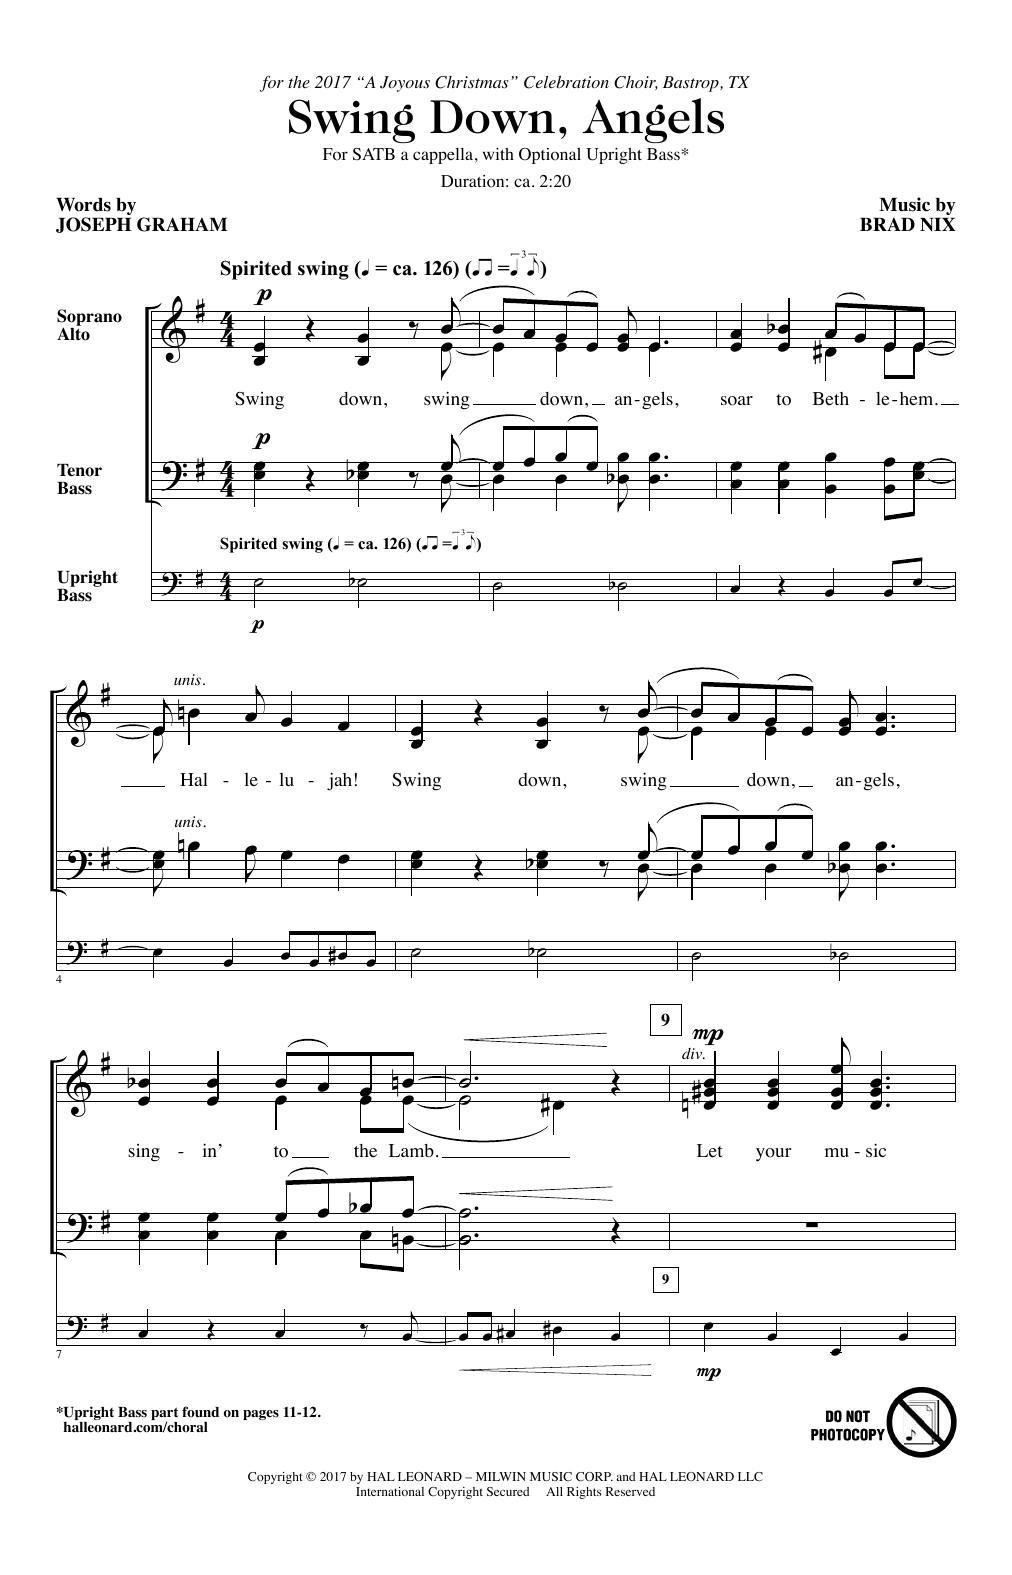 Brad Nix Swing Down, Angels sheet music notes and chords. Download Printable PDF.